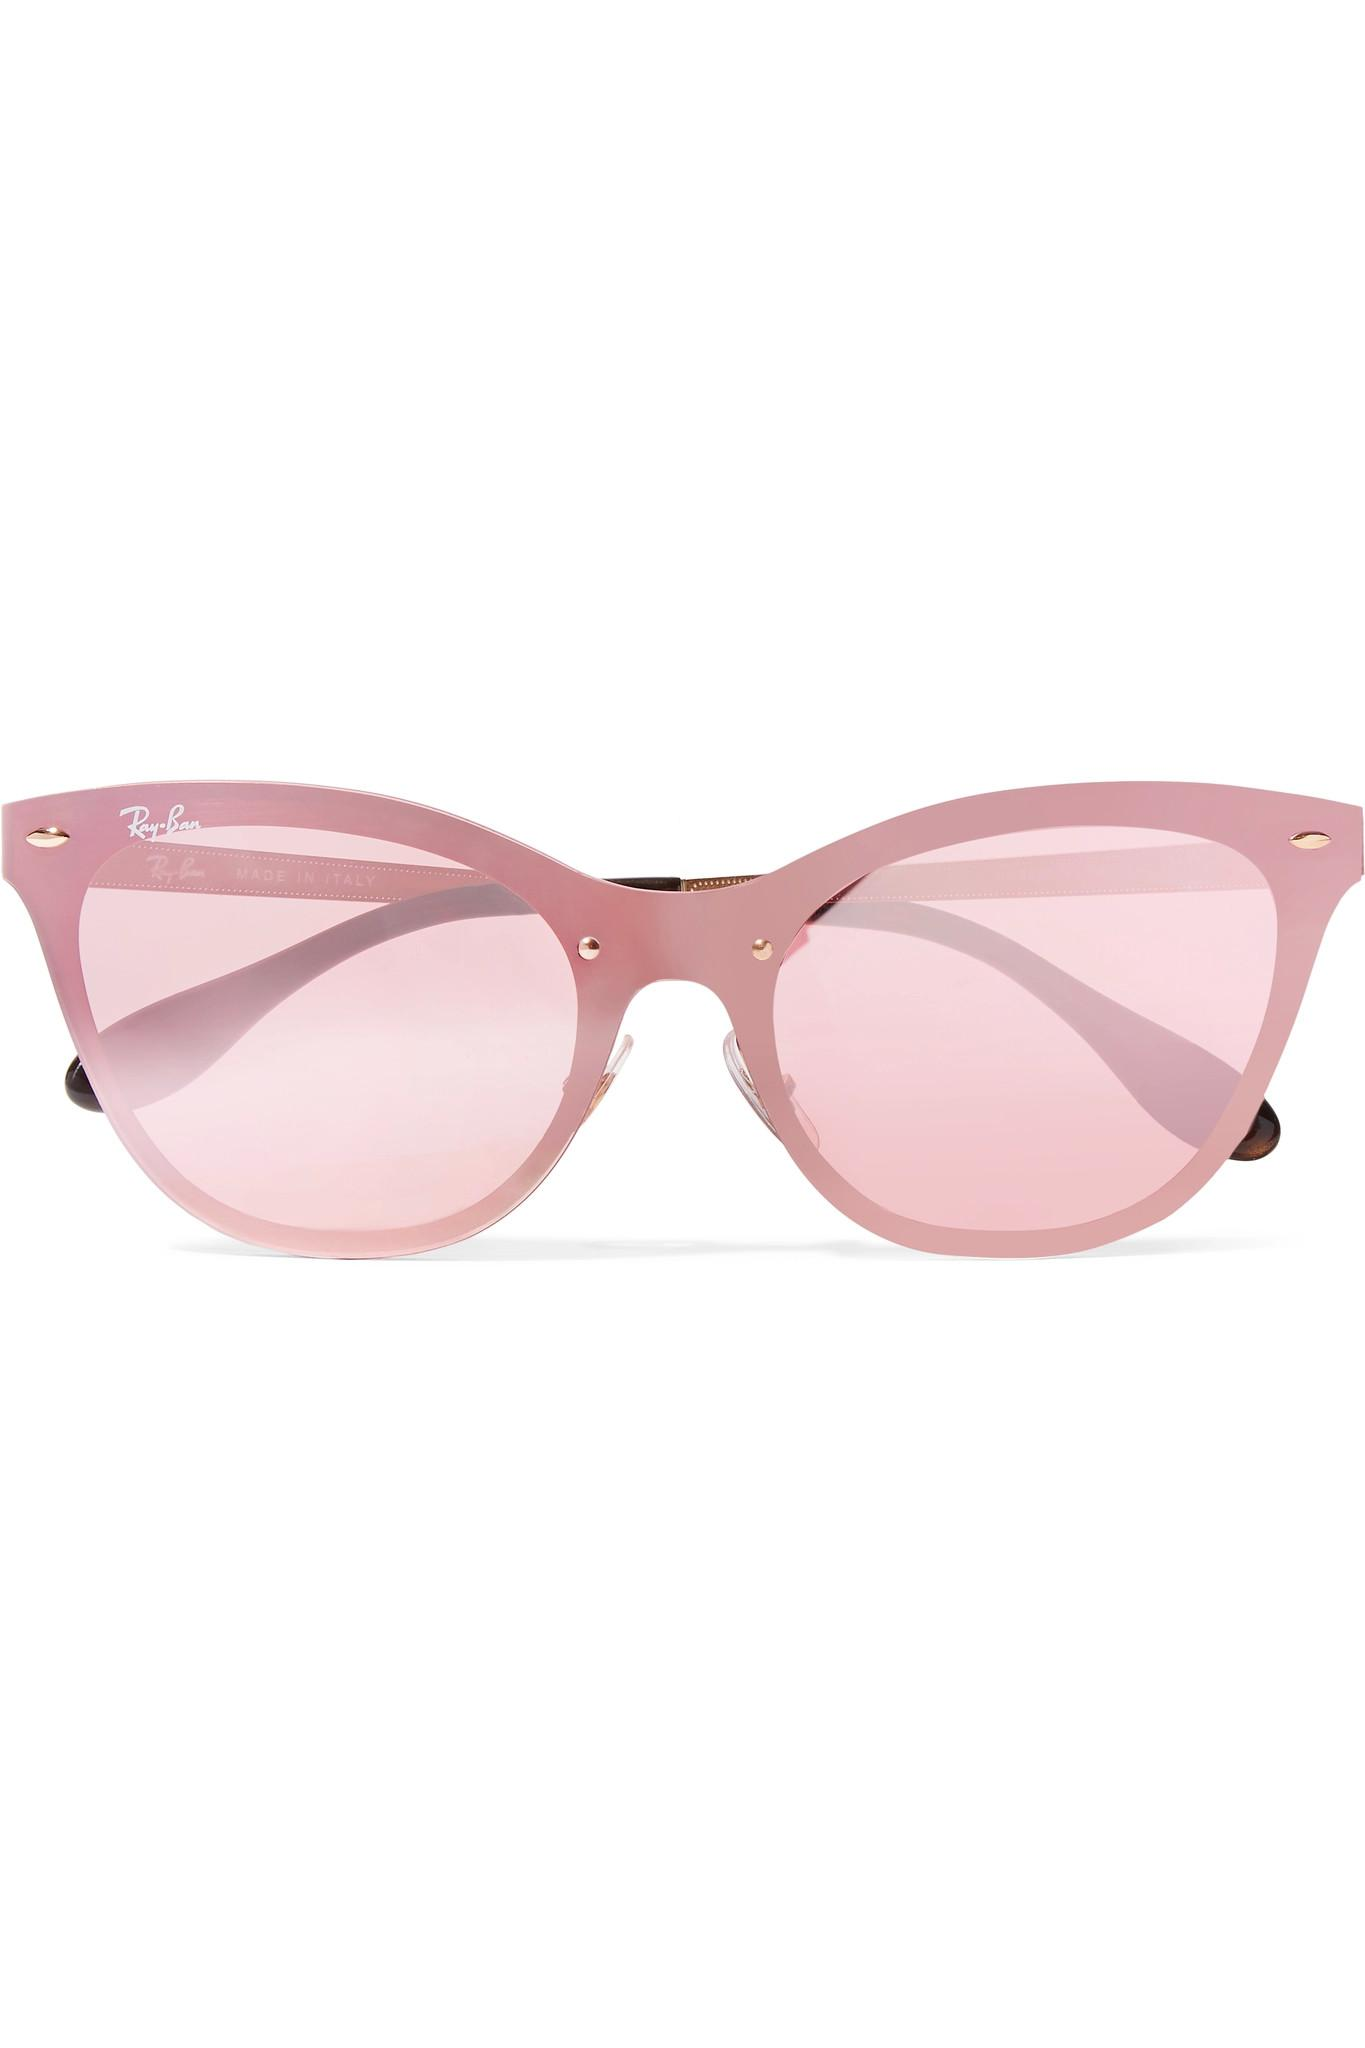 088bc2be387 Gallery. Previously sold at  NET-A-PORTER · Women s Acetate Sunglasses  Women s Cat Eye Sunglasses Women s Ray Ban ...